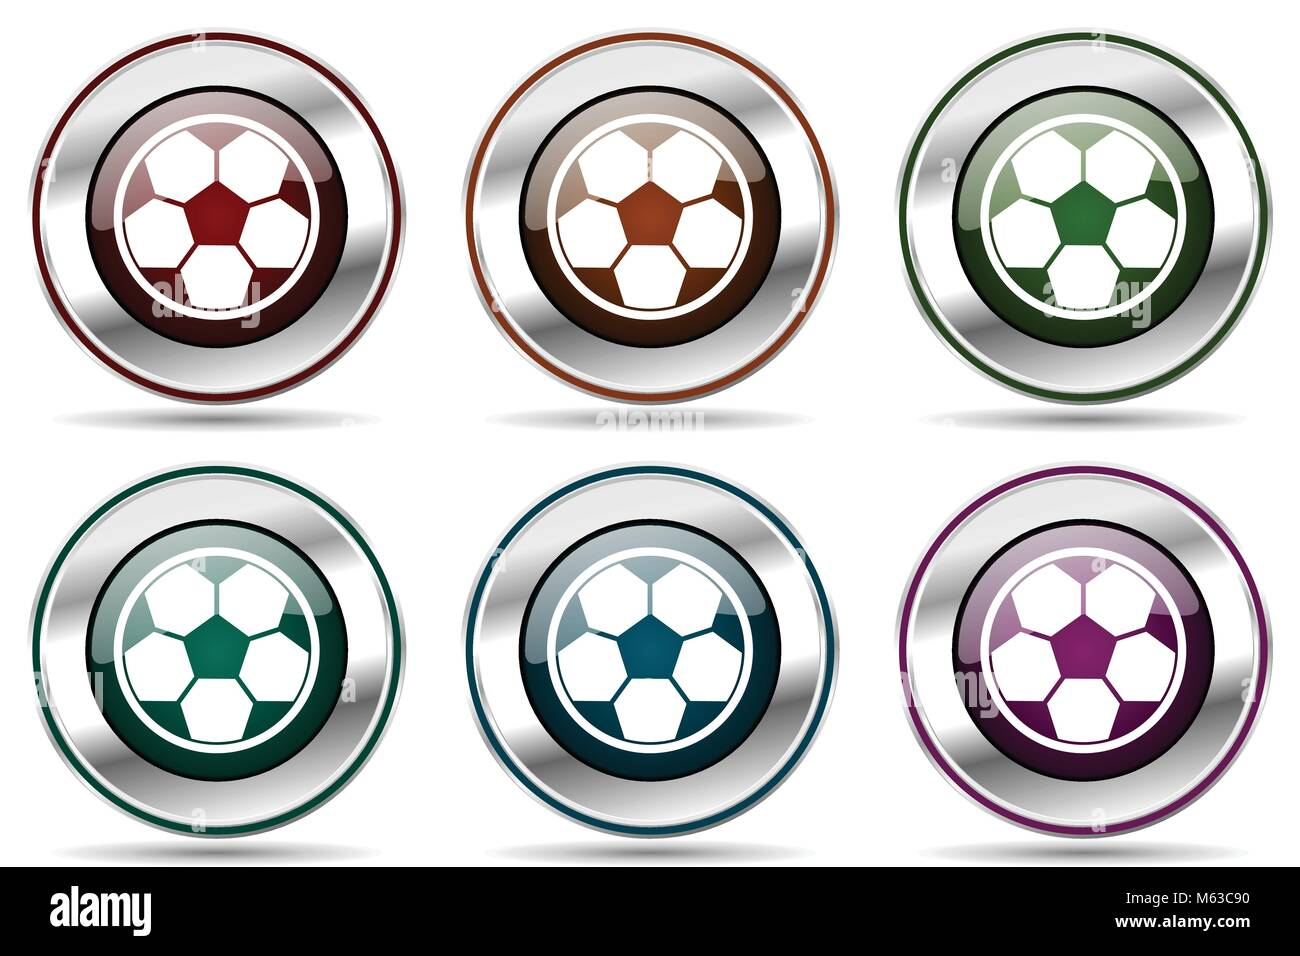 Soccer vector icon set. Silver metallic chrome border icons for web design and smartphone applications - Stock Vector